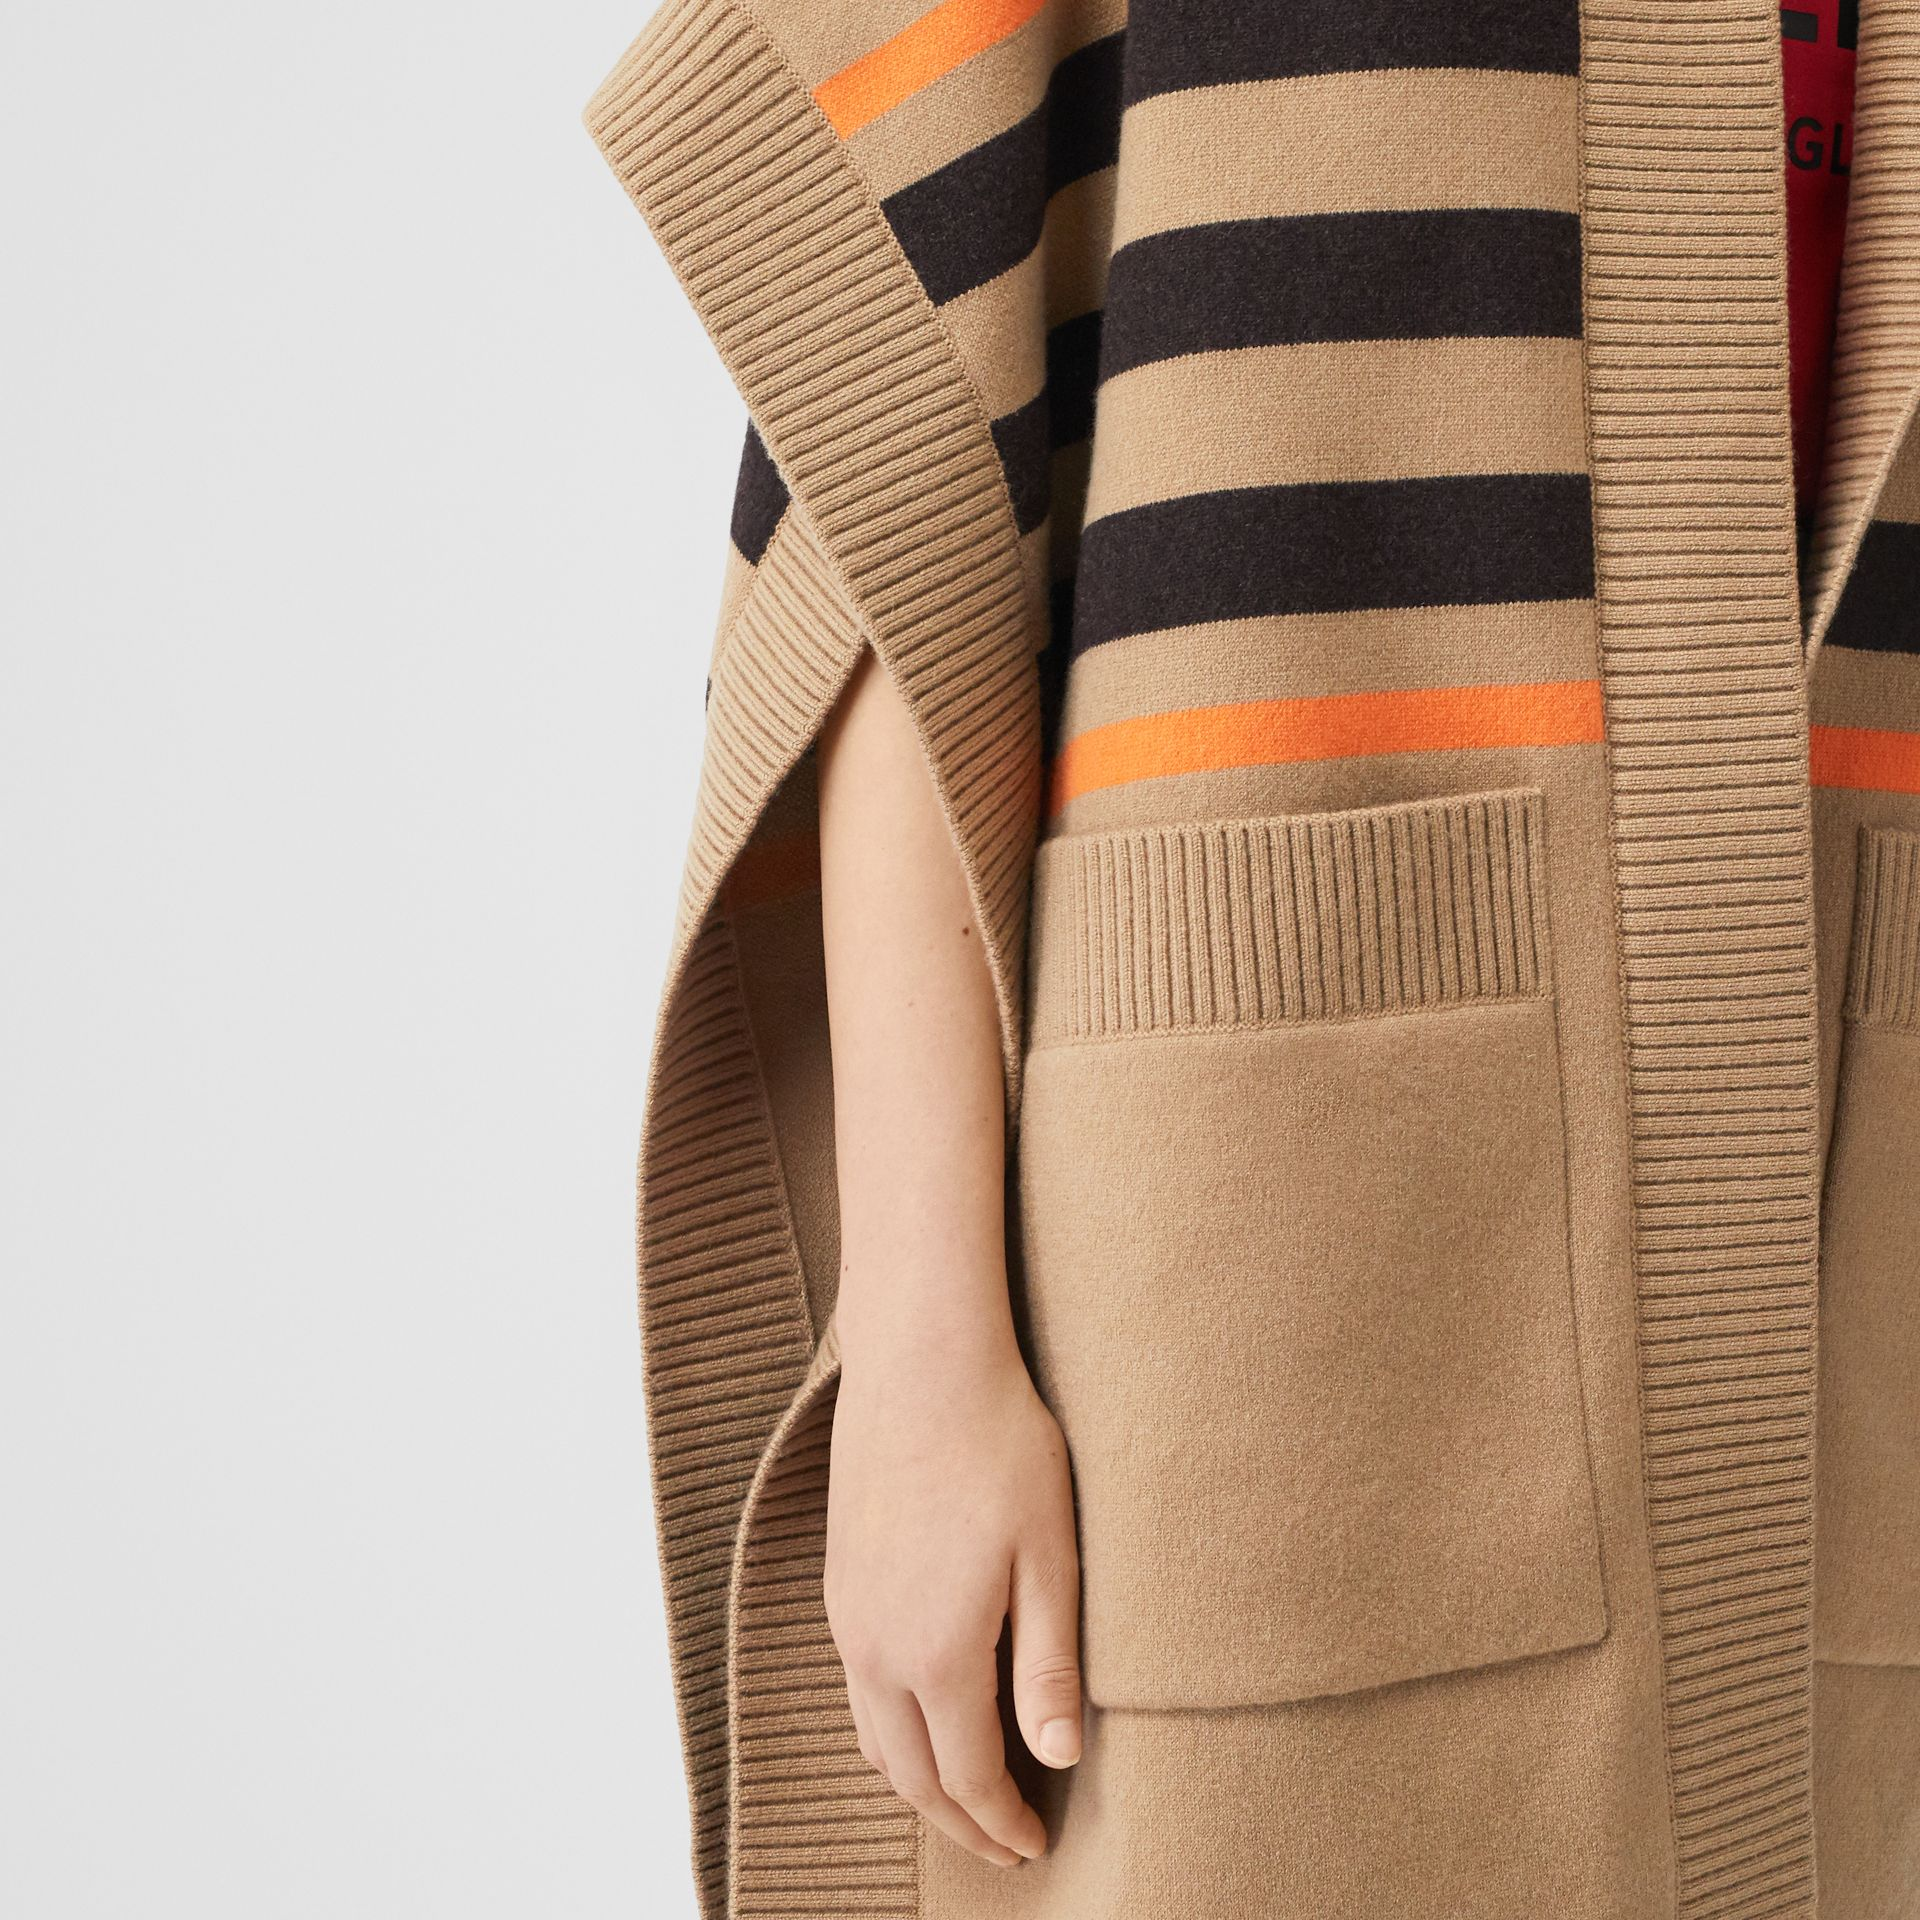 Monogram Motif Intarsia Wool Cashmere Blend Cape in Archive Beige - Women | Burberry Australia - gallery image 4